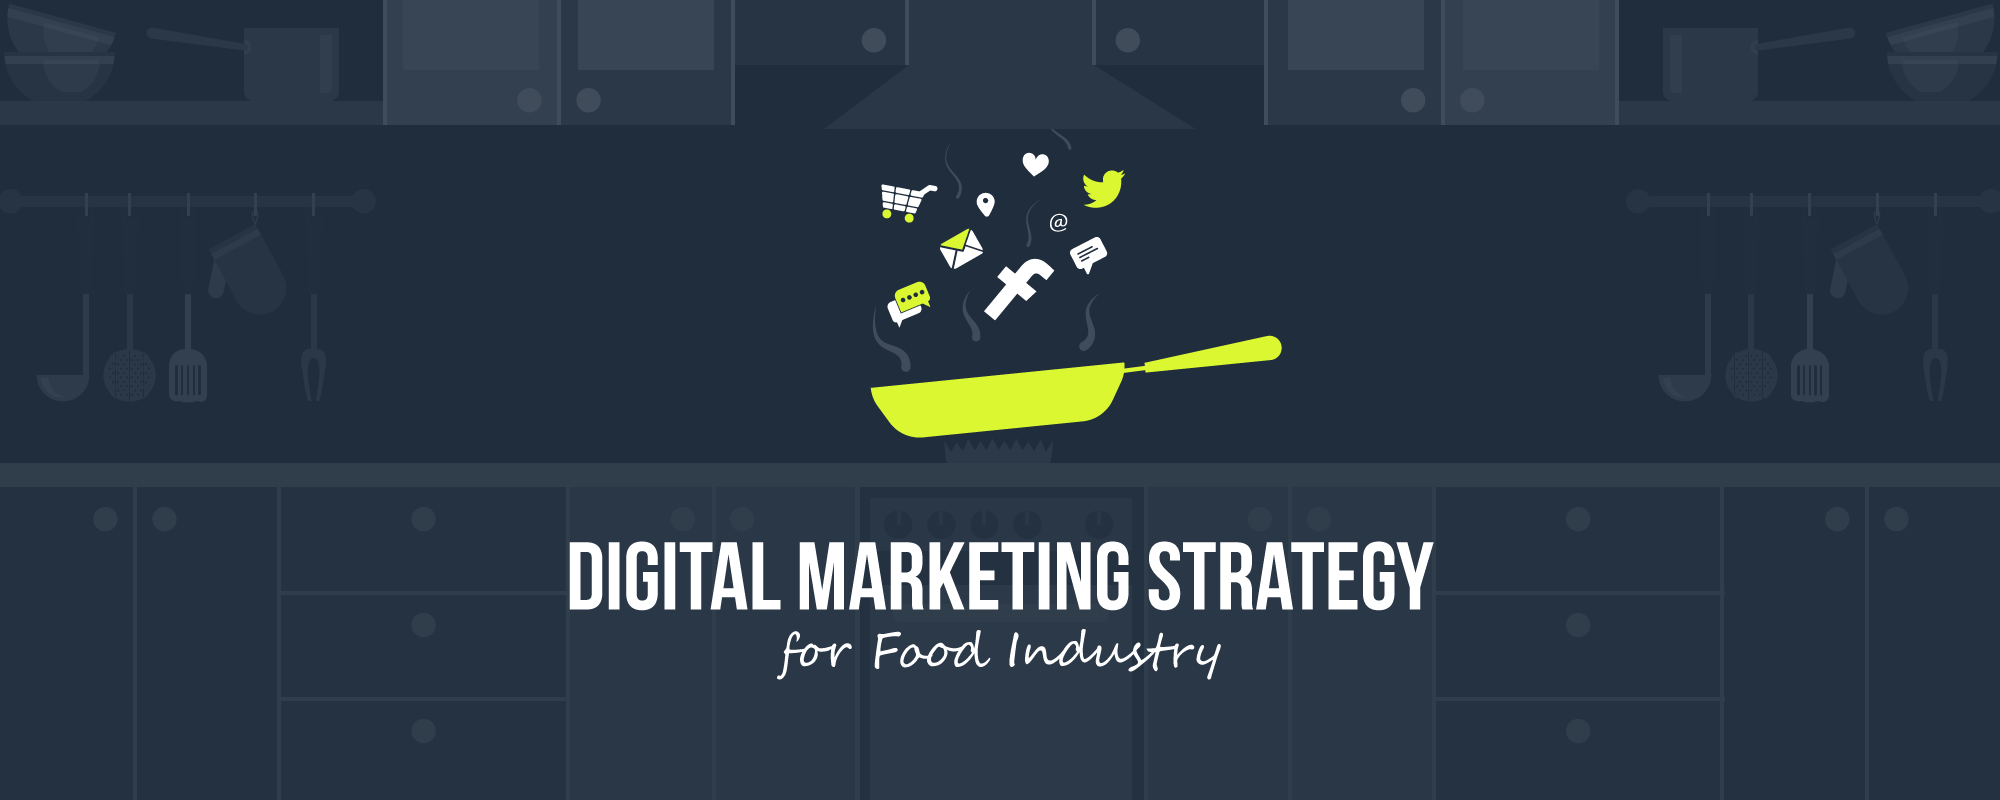 Digital Marketing Strategy for Online Food Ordering Business